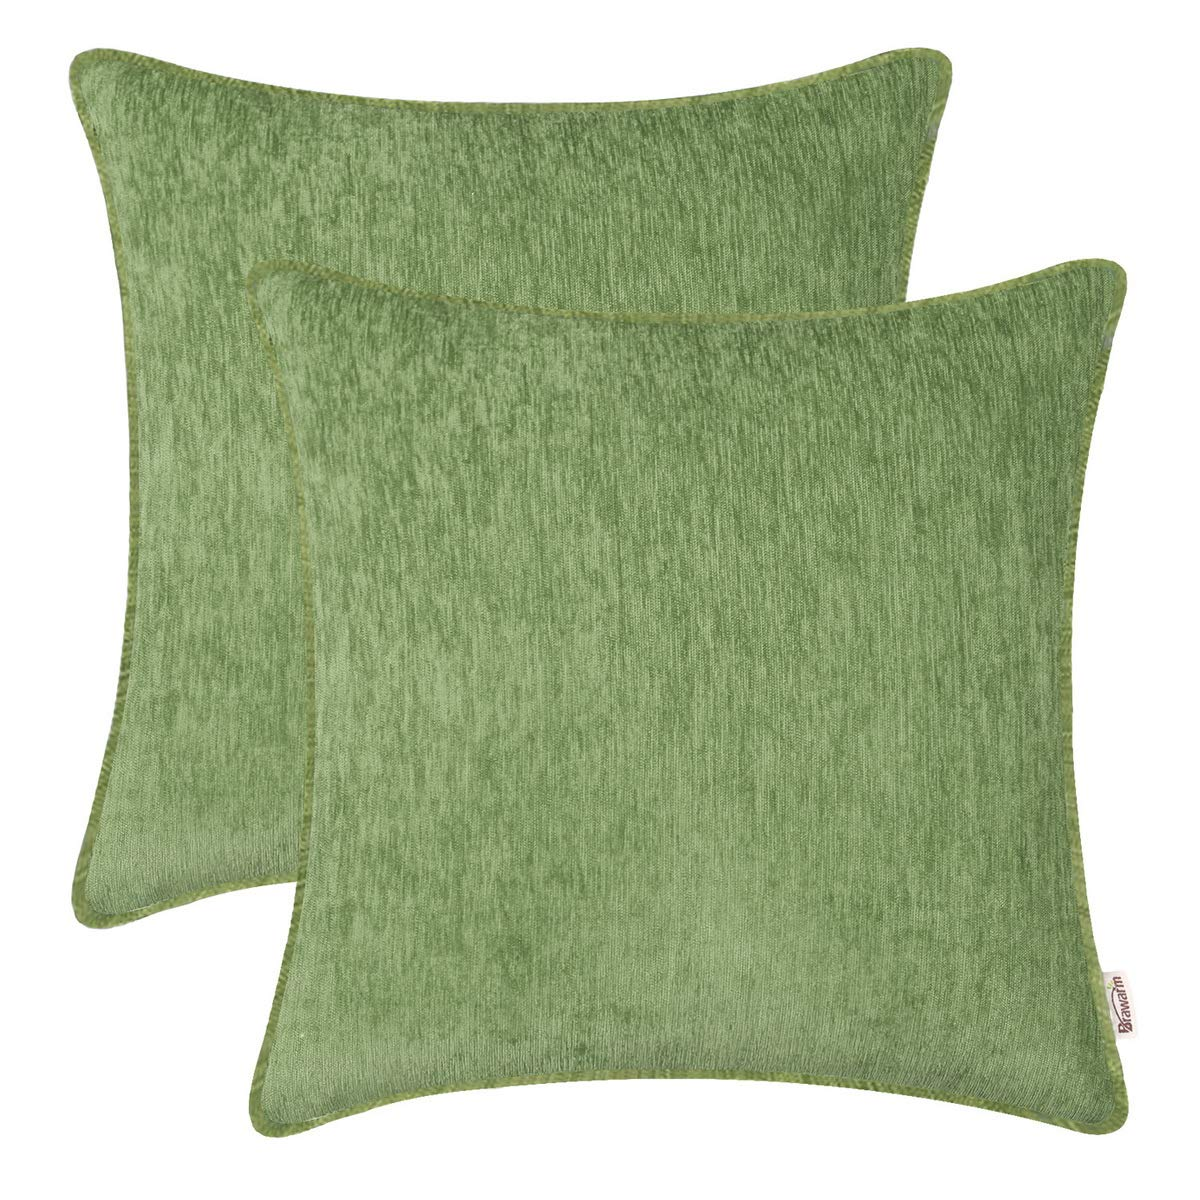 BRAWARM Pack of 2 Cozy Throw Pillow Covers Cases for Sofa Couch Home Decoration Solid Dyed Striped Soft Chenille with Piping 24 X 24 Inches Forest Green